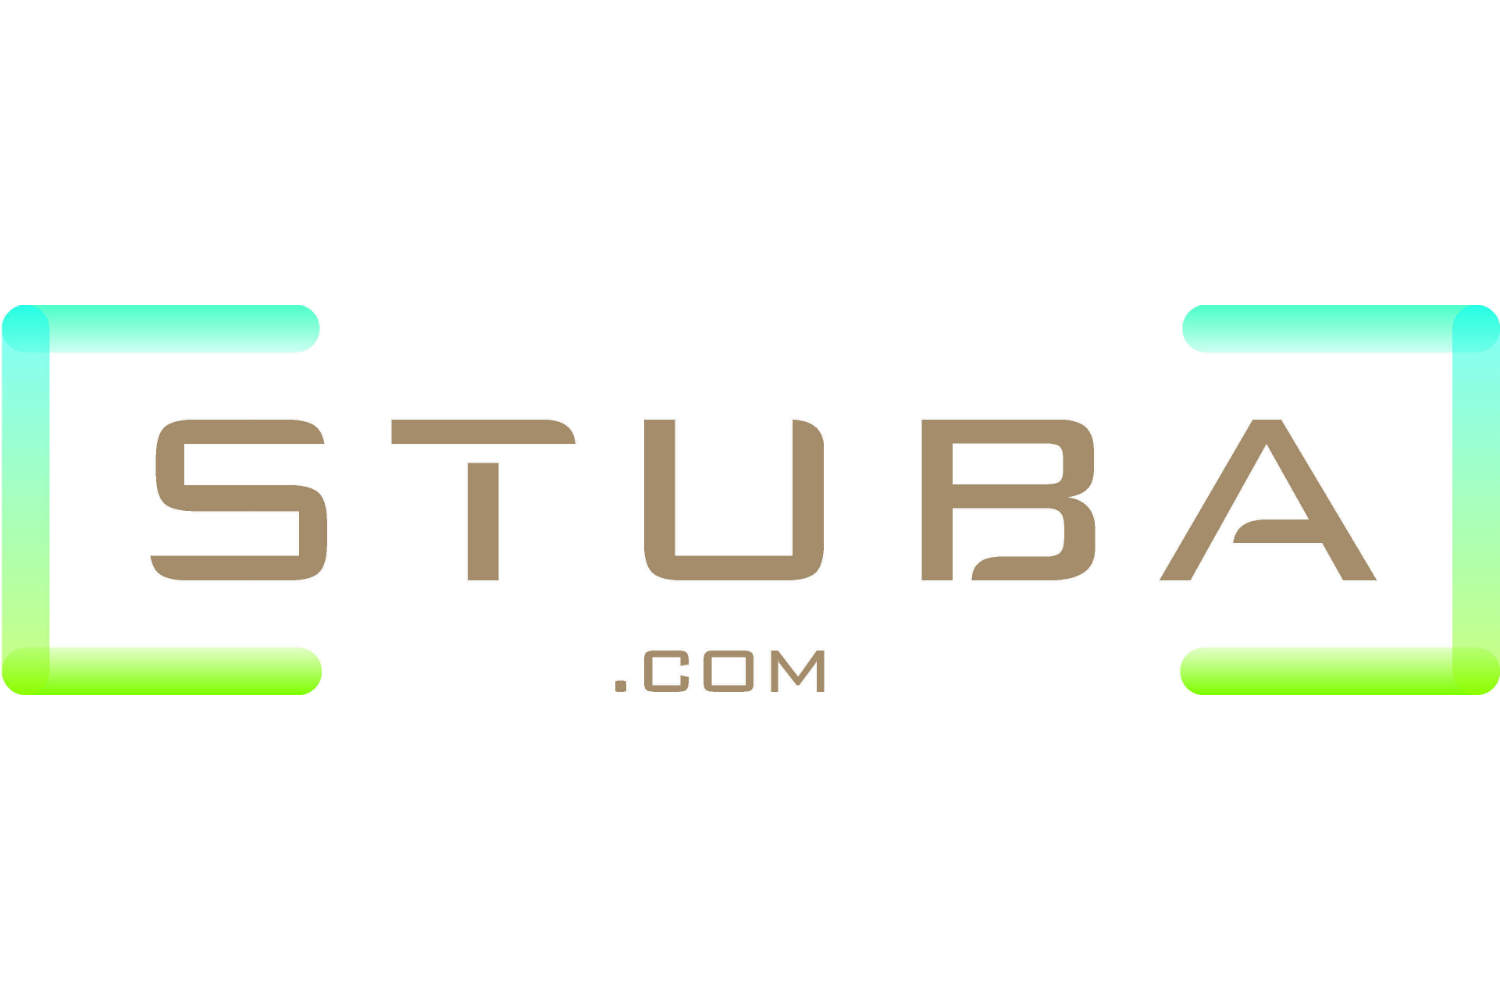 Getabed and roomsXML unveil new brand Stuba after merger